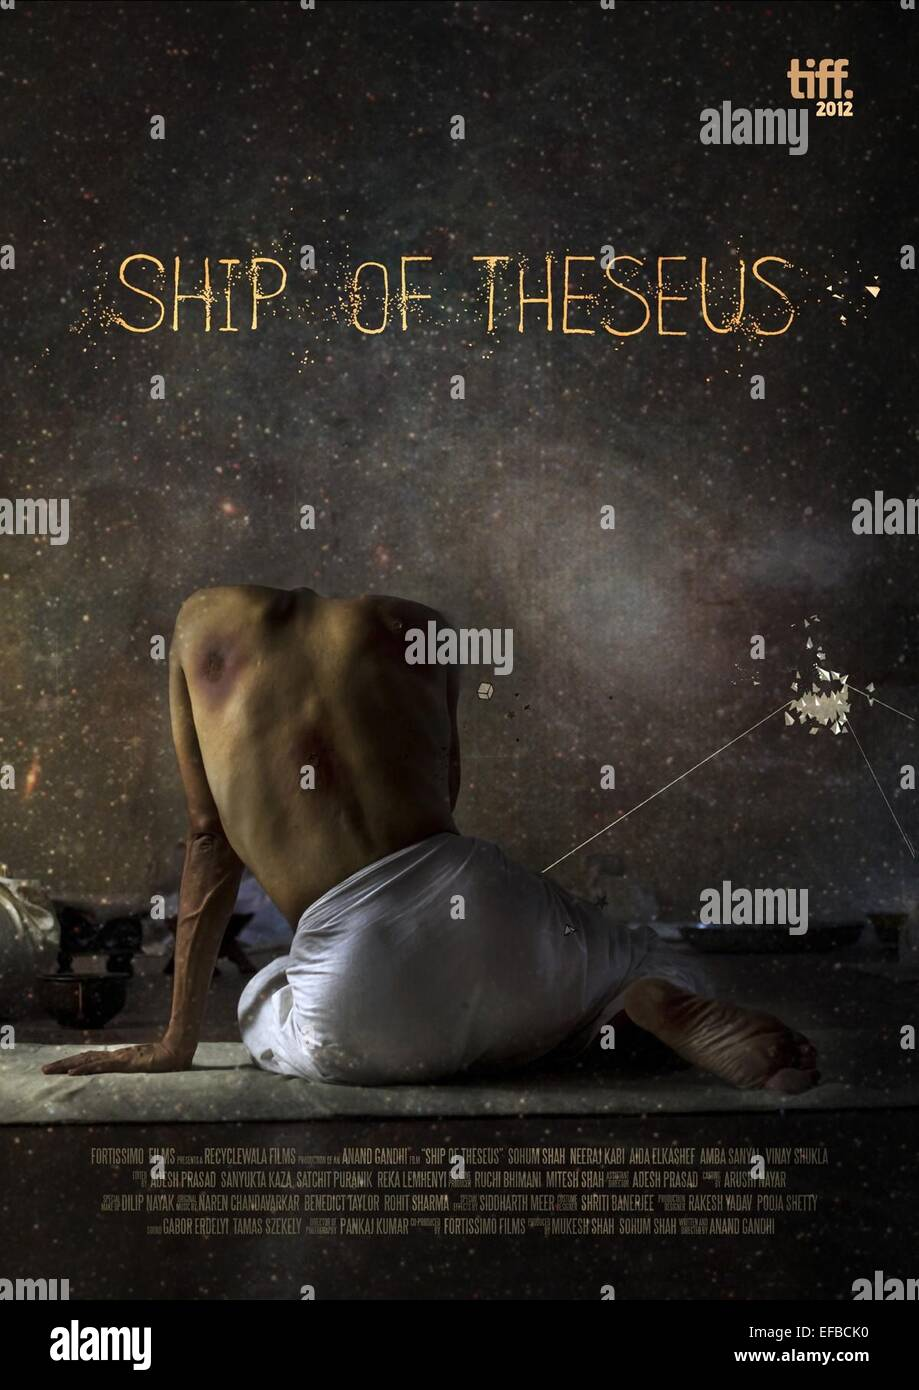 MOVIE POSTER SHIP OF THESEUS (2012)